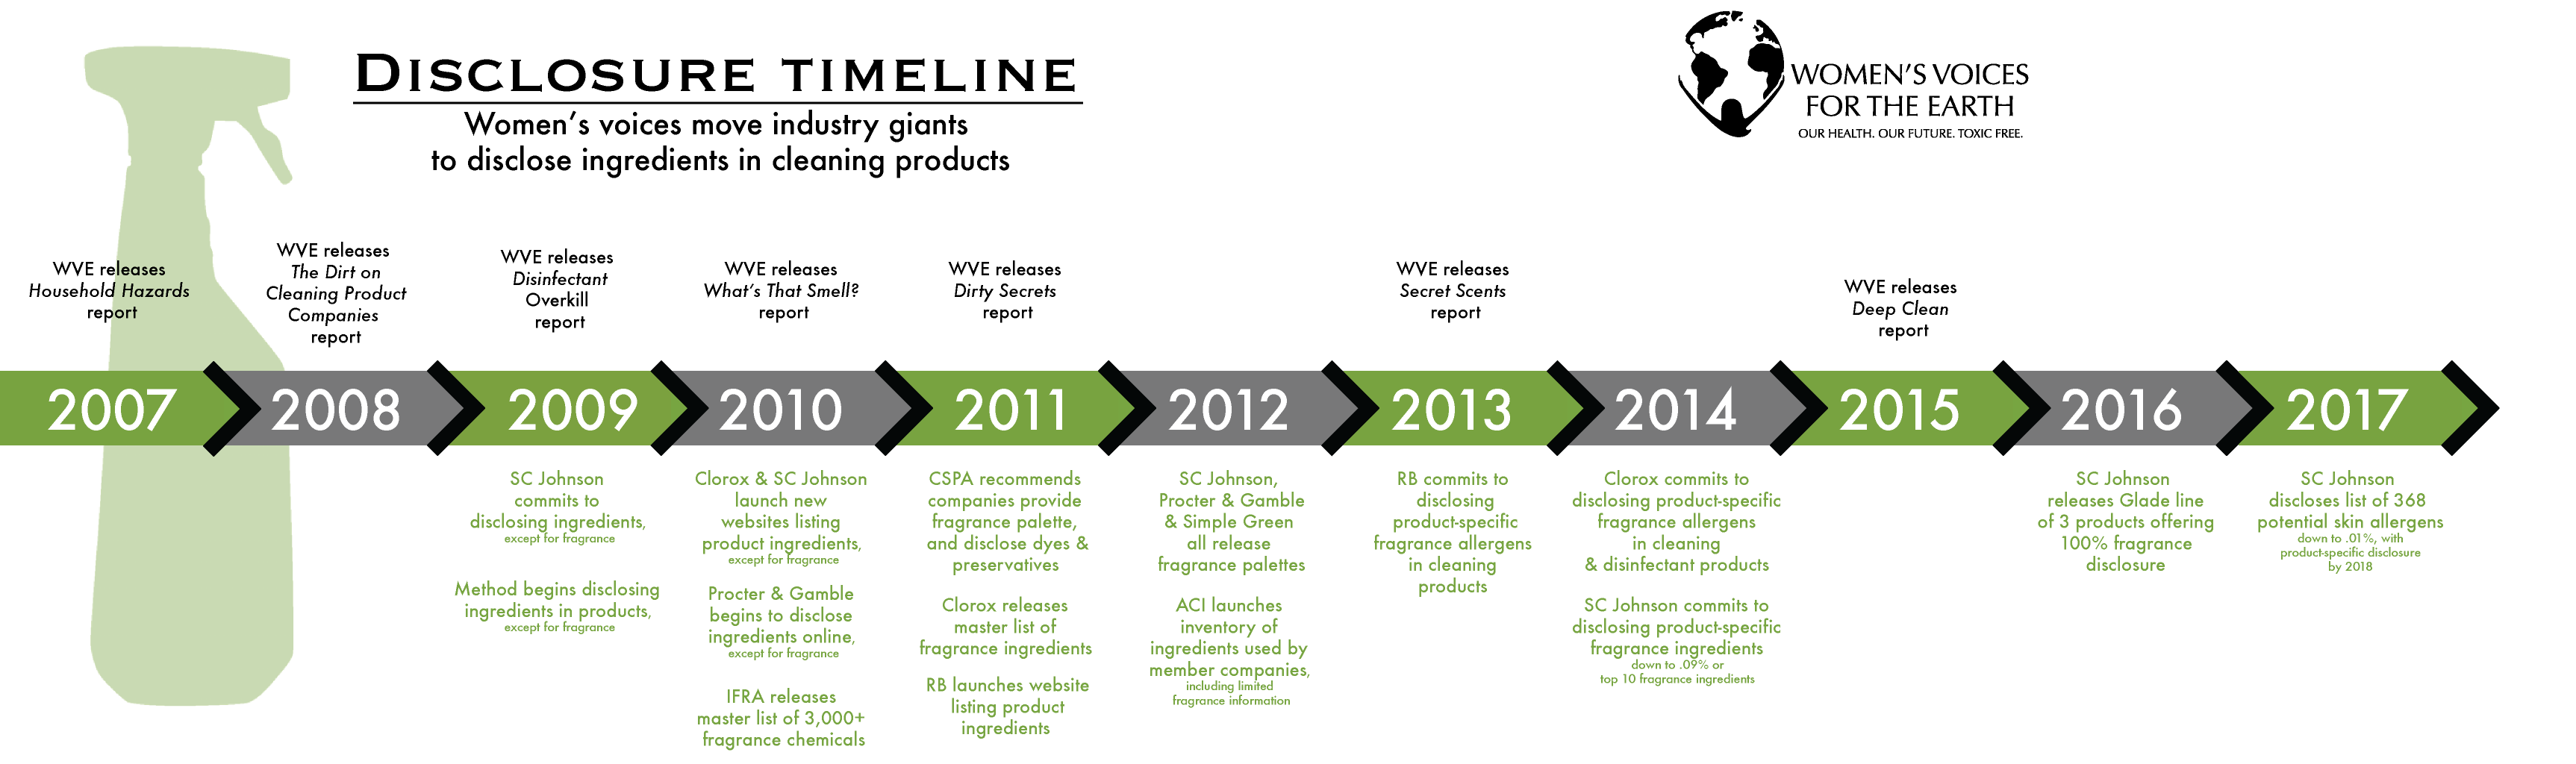 2017 cleaning product ingredient disclosure timeline